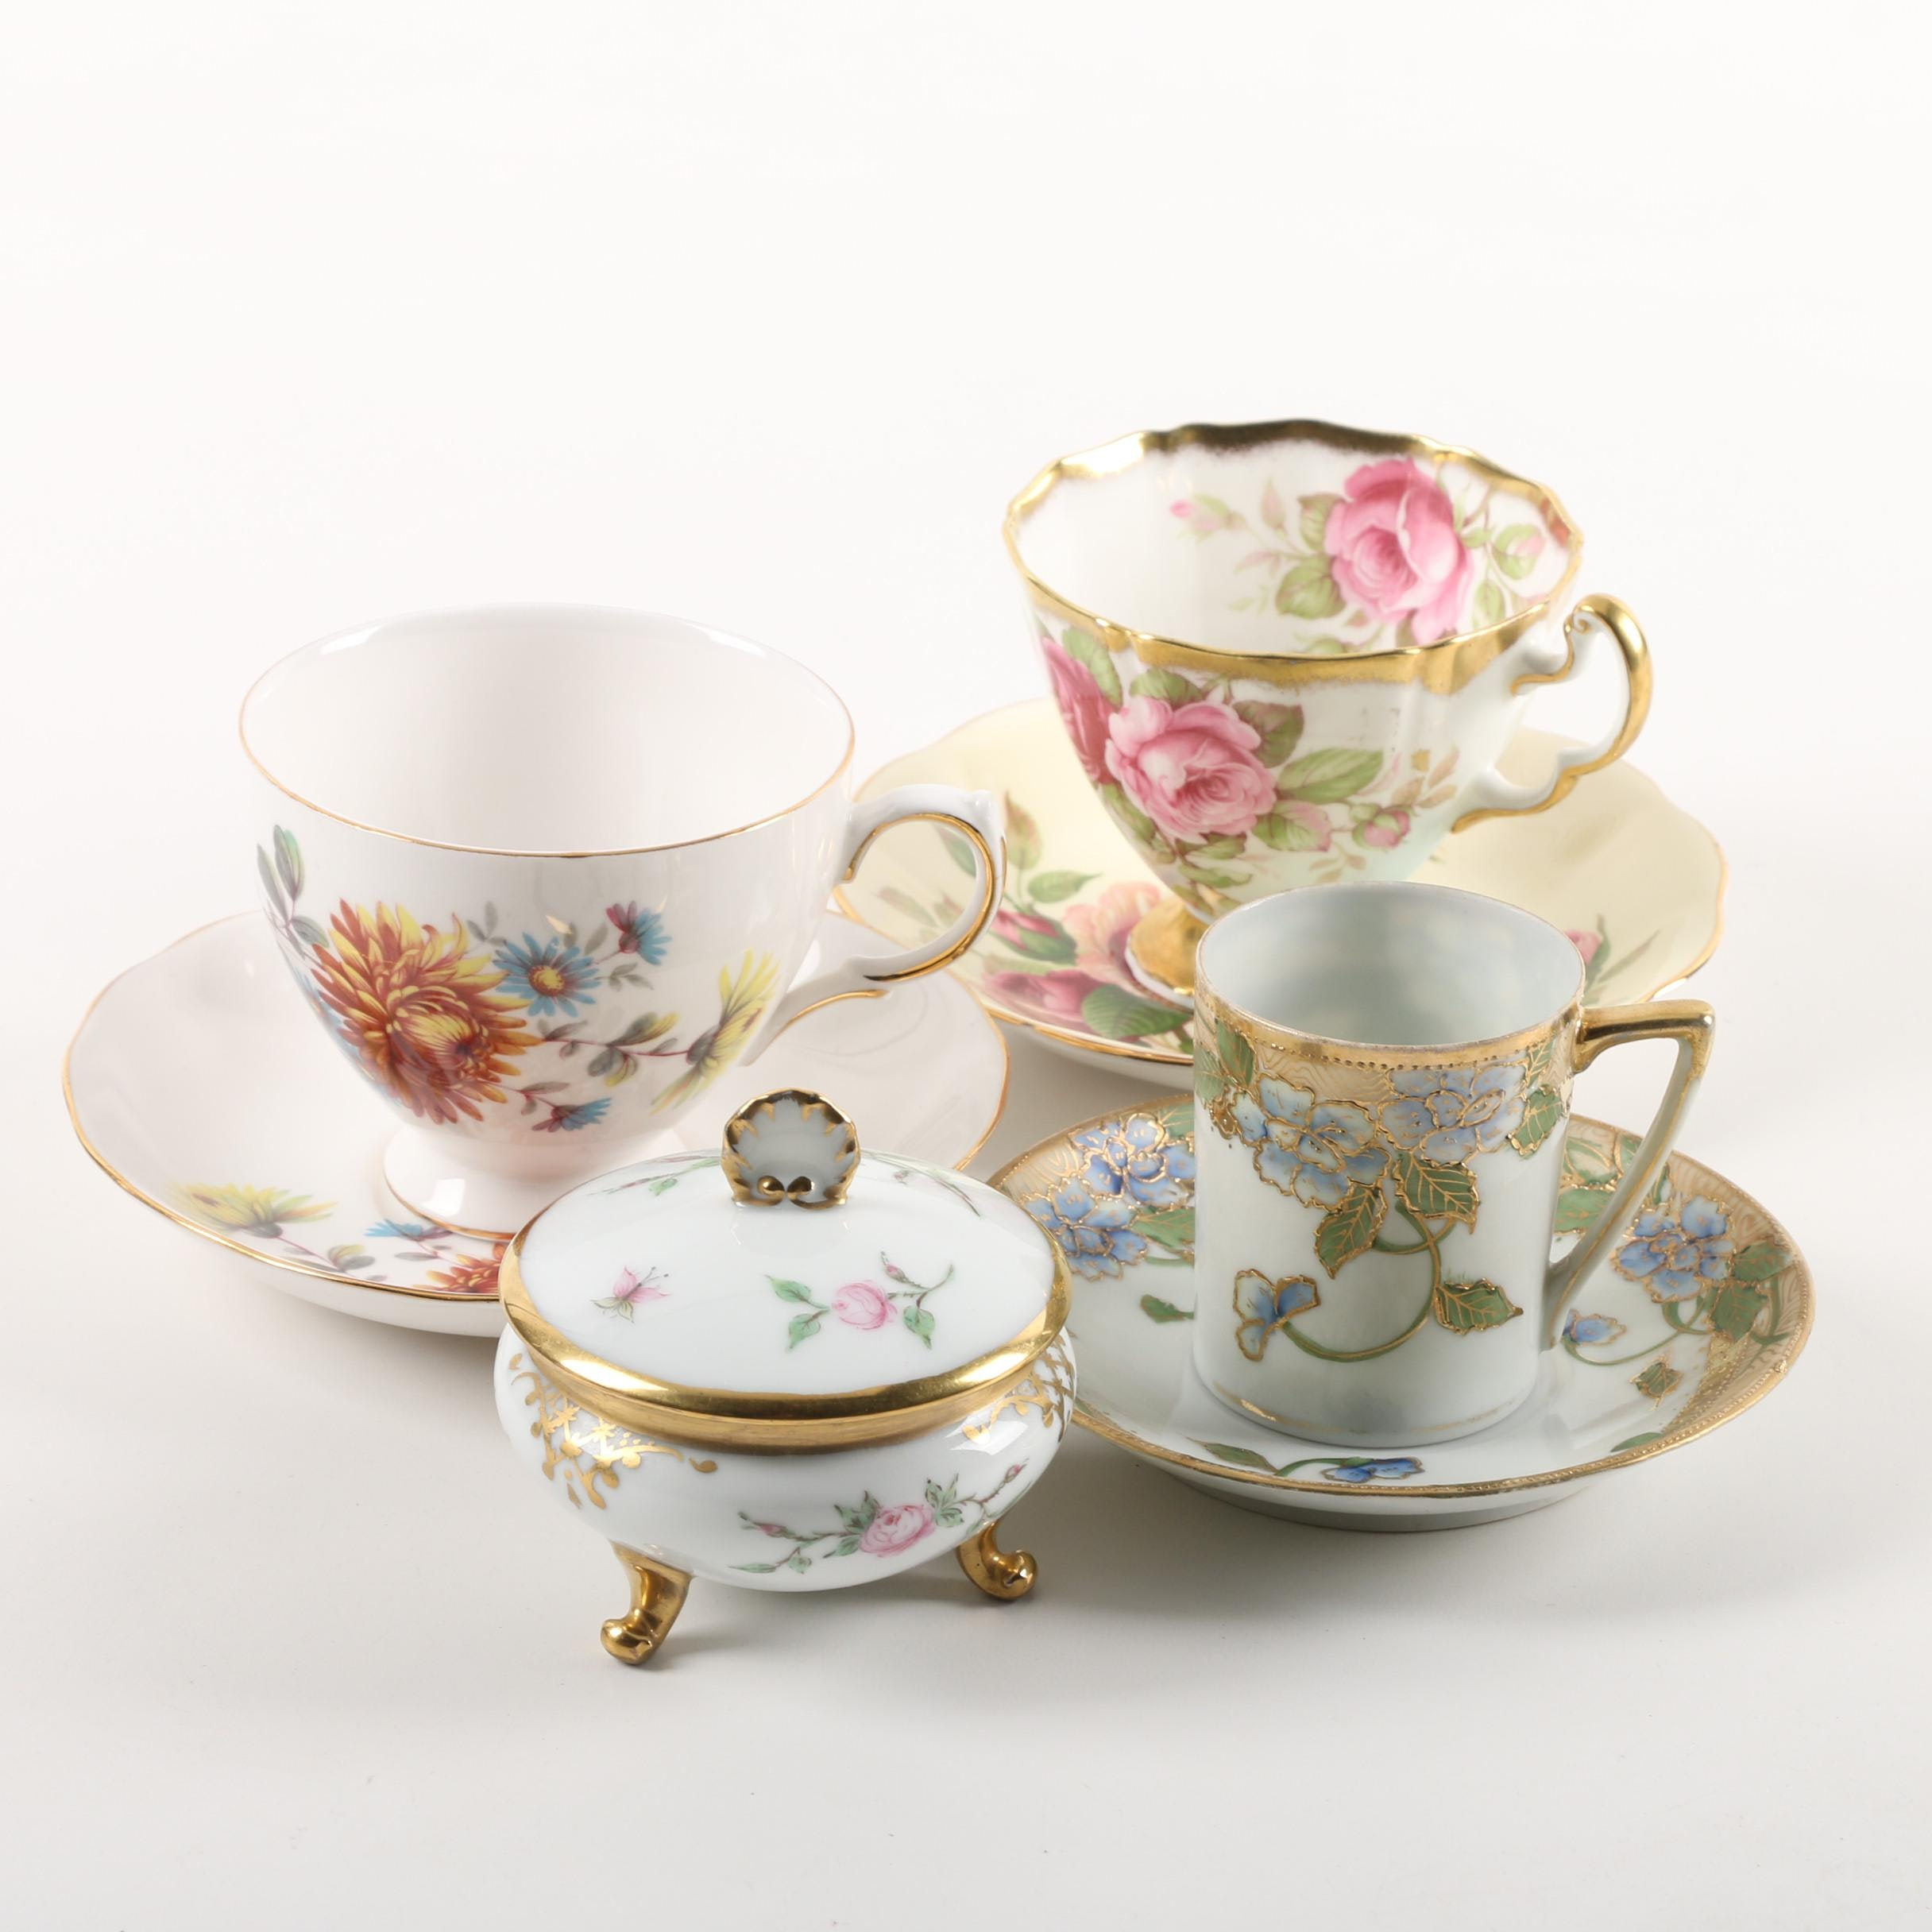 Porcelain and Bone China Tableware including Limoges and Adderley